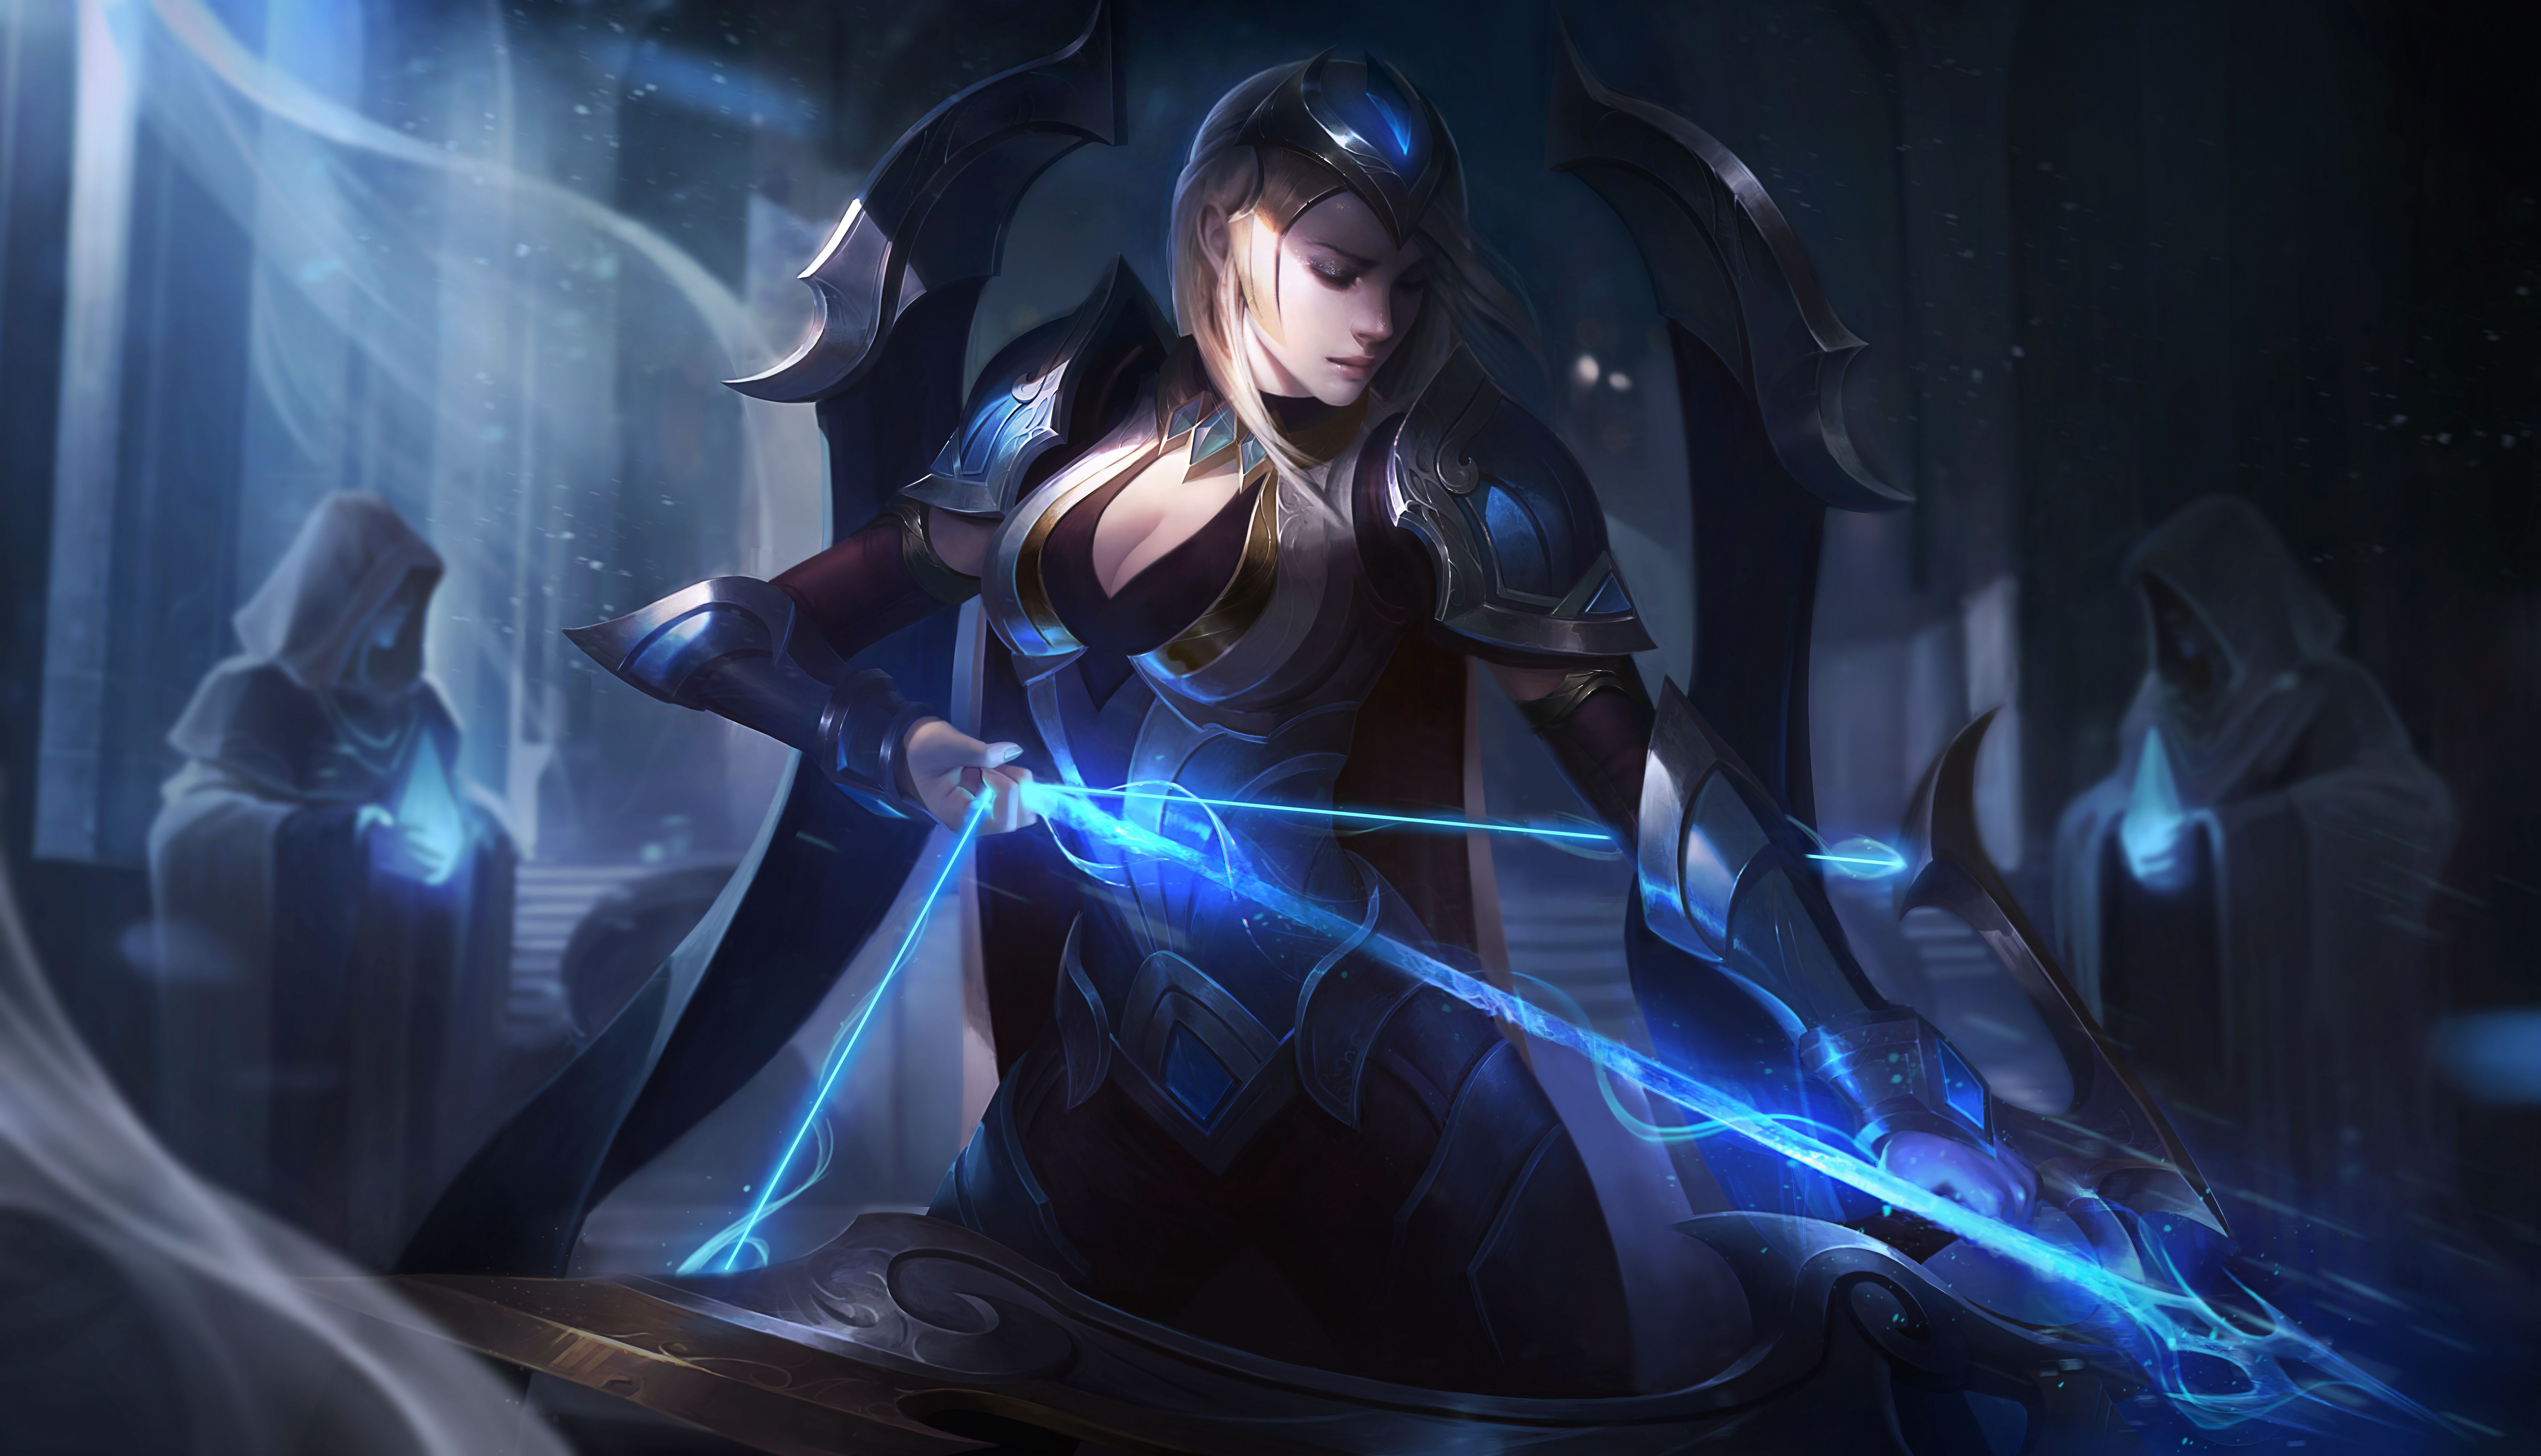 Championship Ashe Lol Wallpapers Promoleague Of Legends